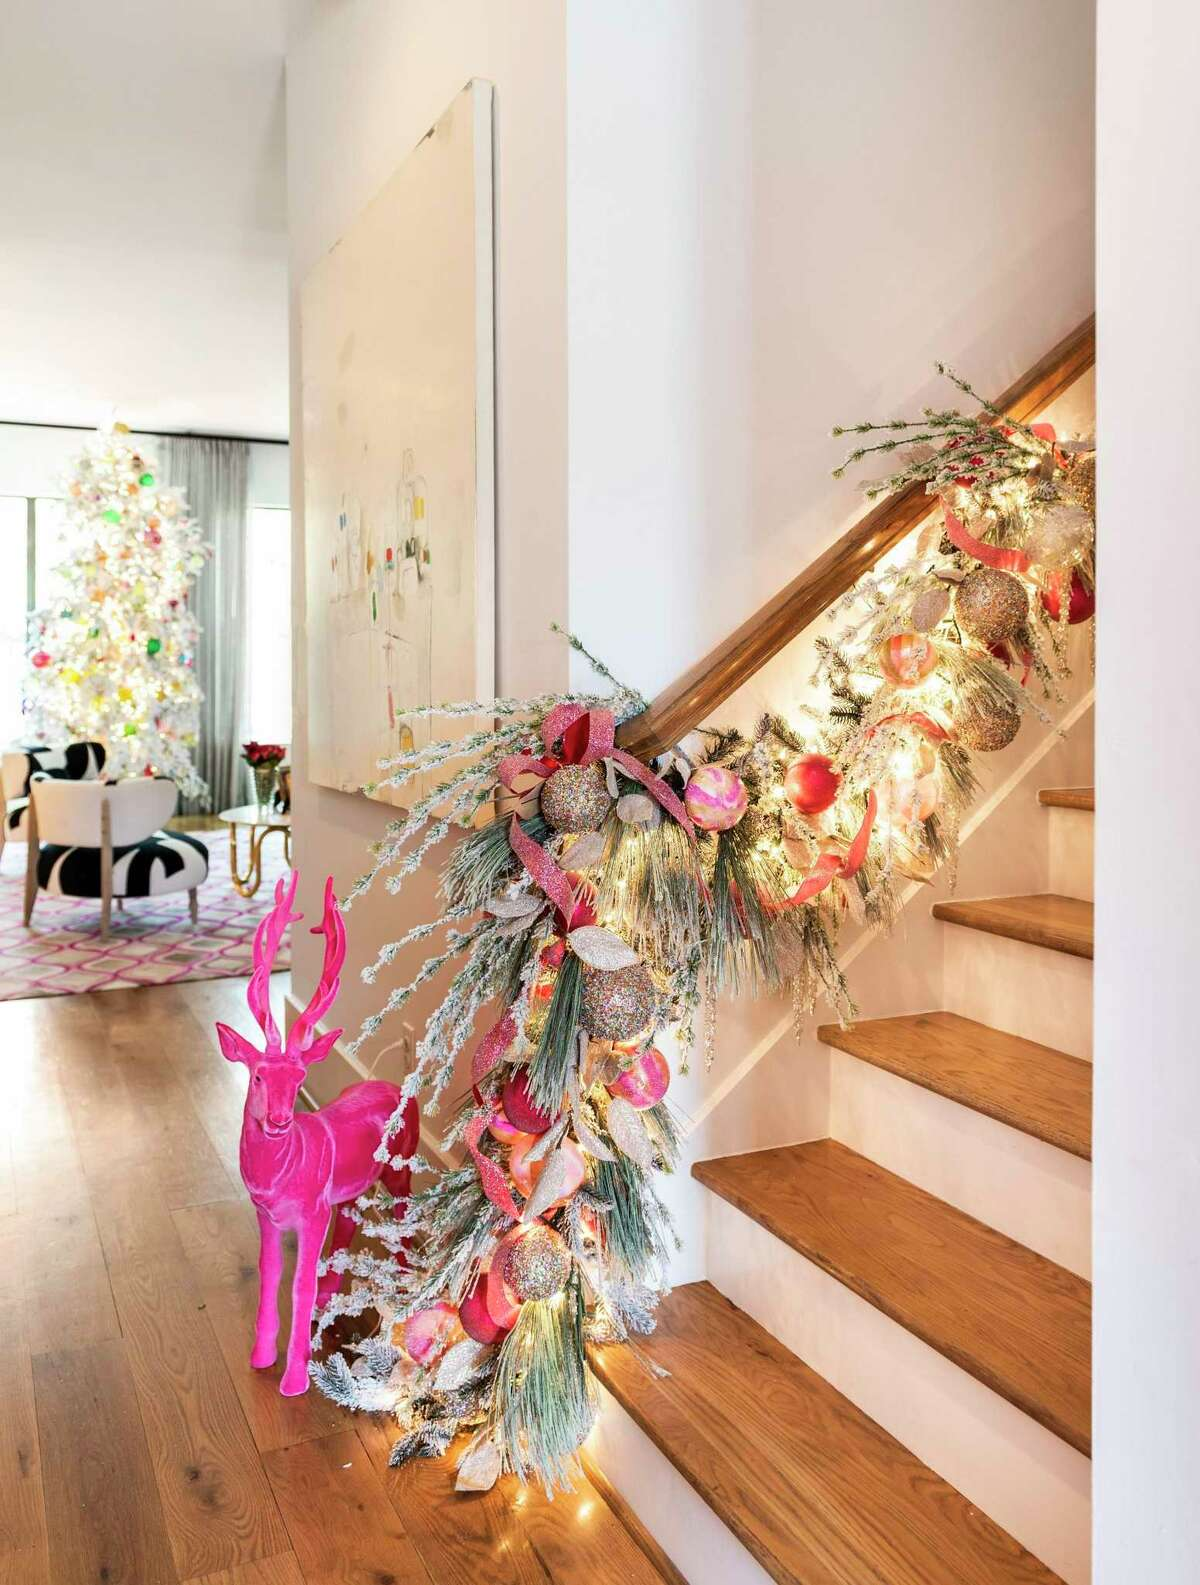 Gust's home has plenty of pink, so this bright pink reindeer is right at home at the base of stairs.